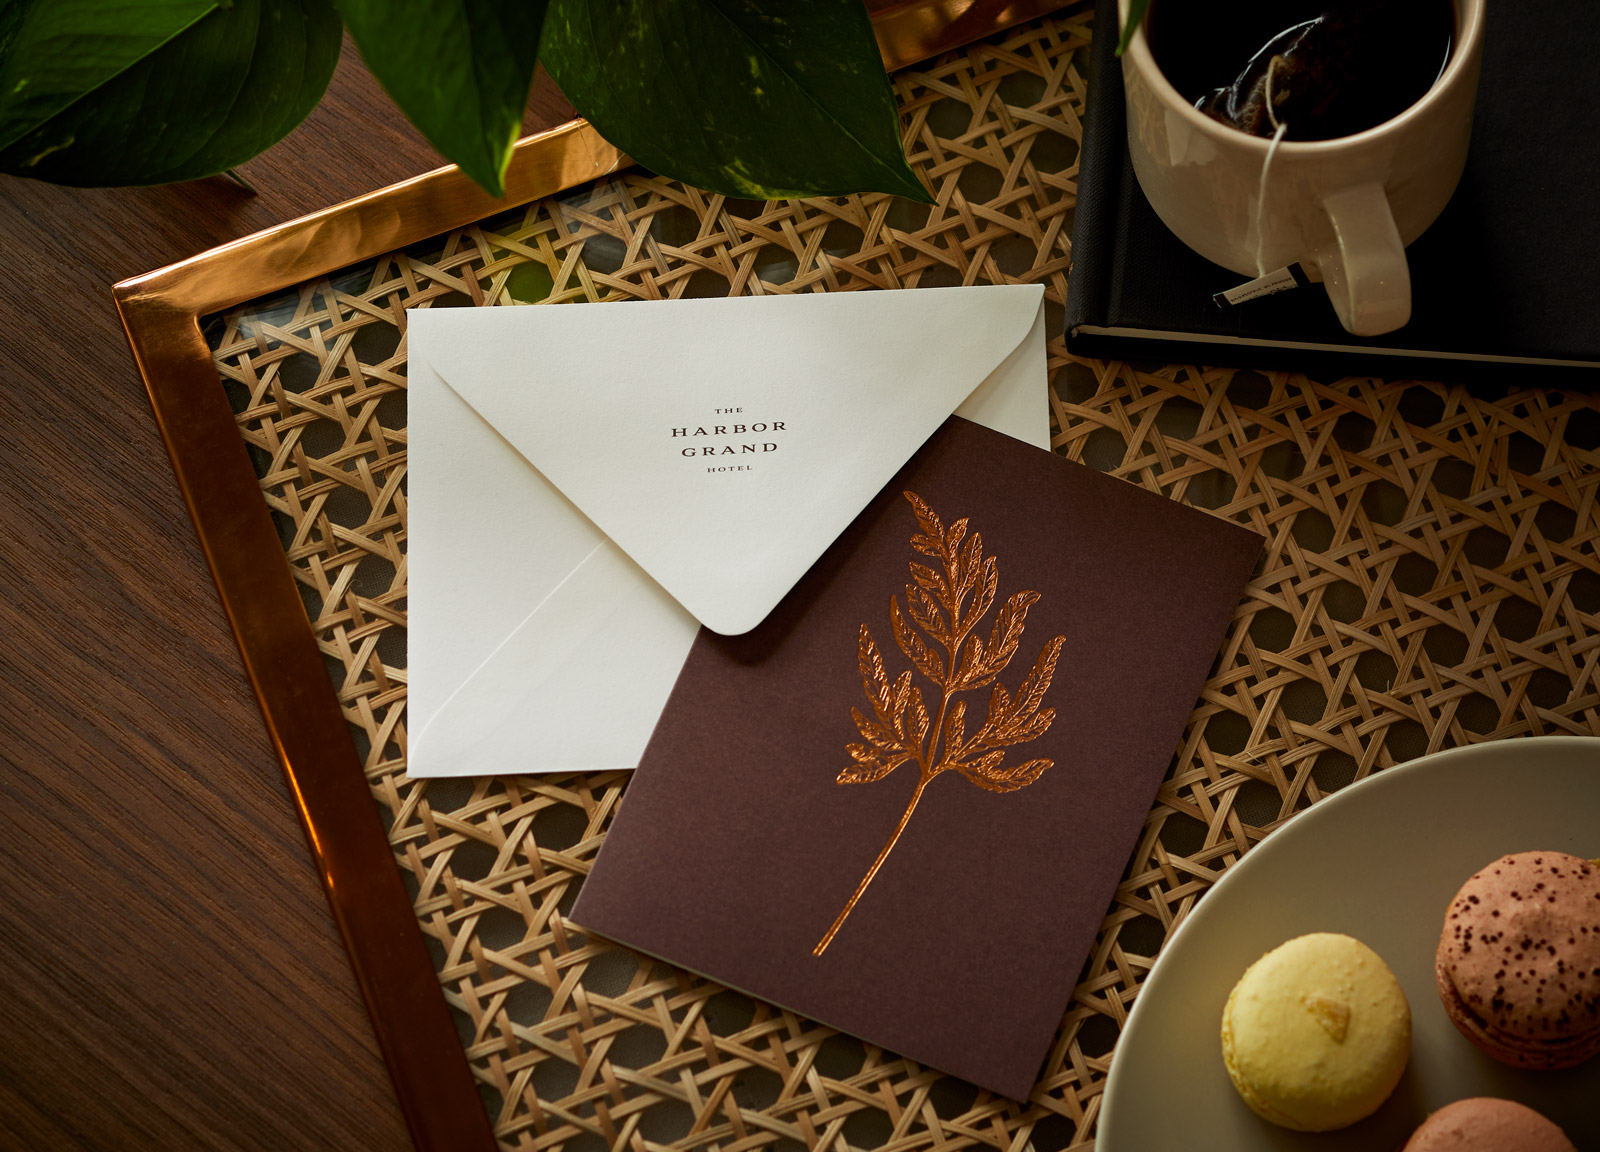 Greeting card with bronze botanical foil stamp and envelope with The Harbor Grand Hotel logo